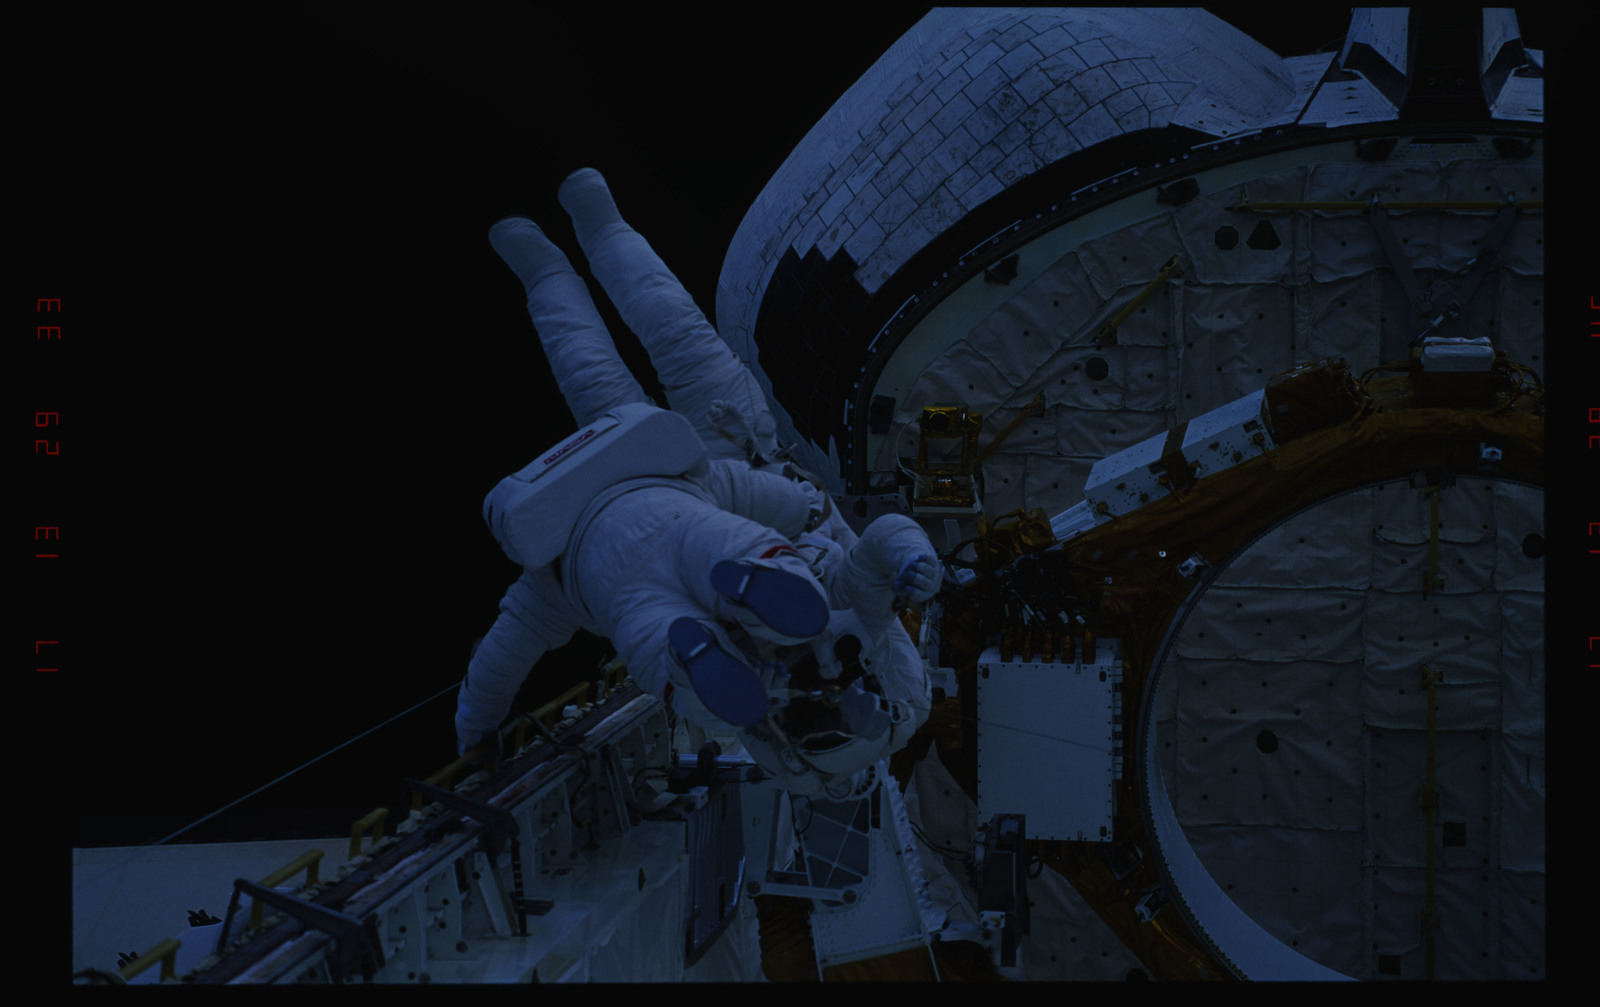 STS054-33-025 - STS-054 - Views of EVA Crewmembers working in the payload bay carrying one another.